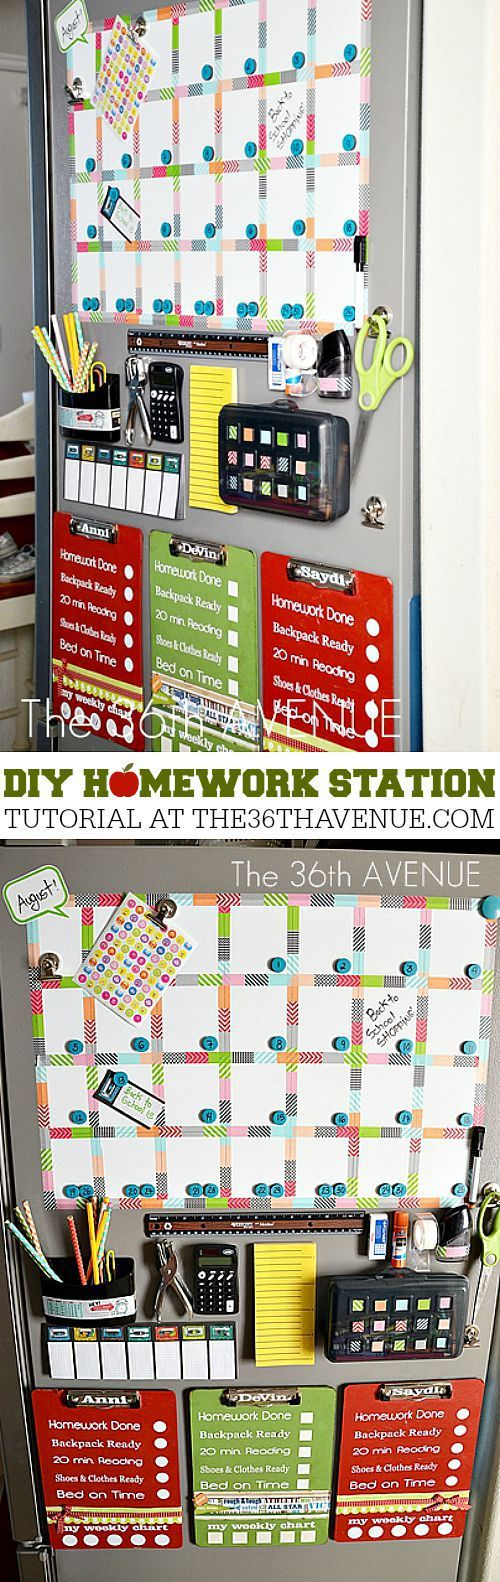 DIY Back to School Homework Station Ideas - Accessible and Organized and all on the side of your fridge - homework station tutorial via the 36th Avenue